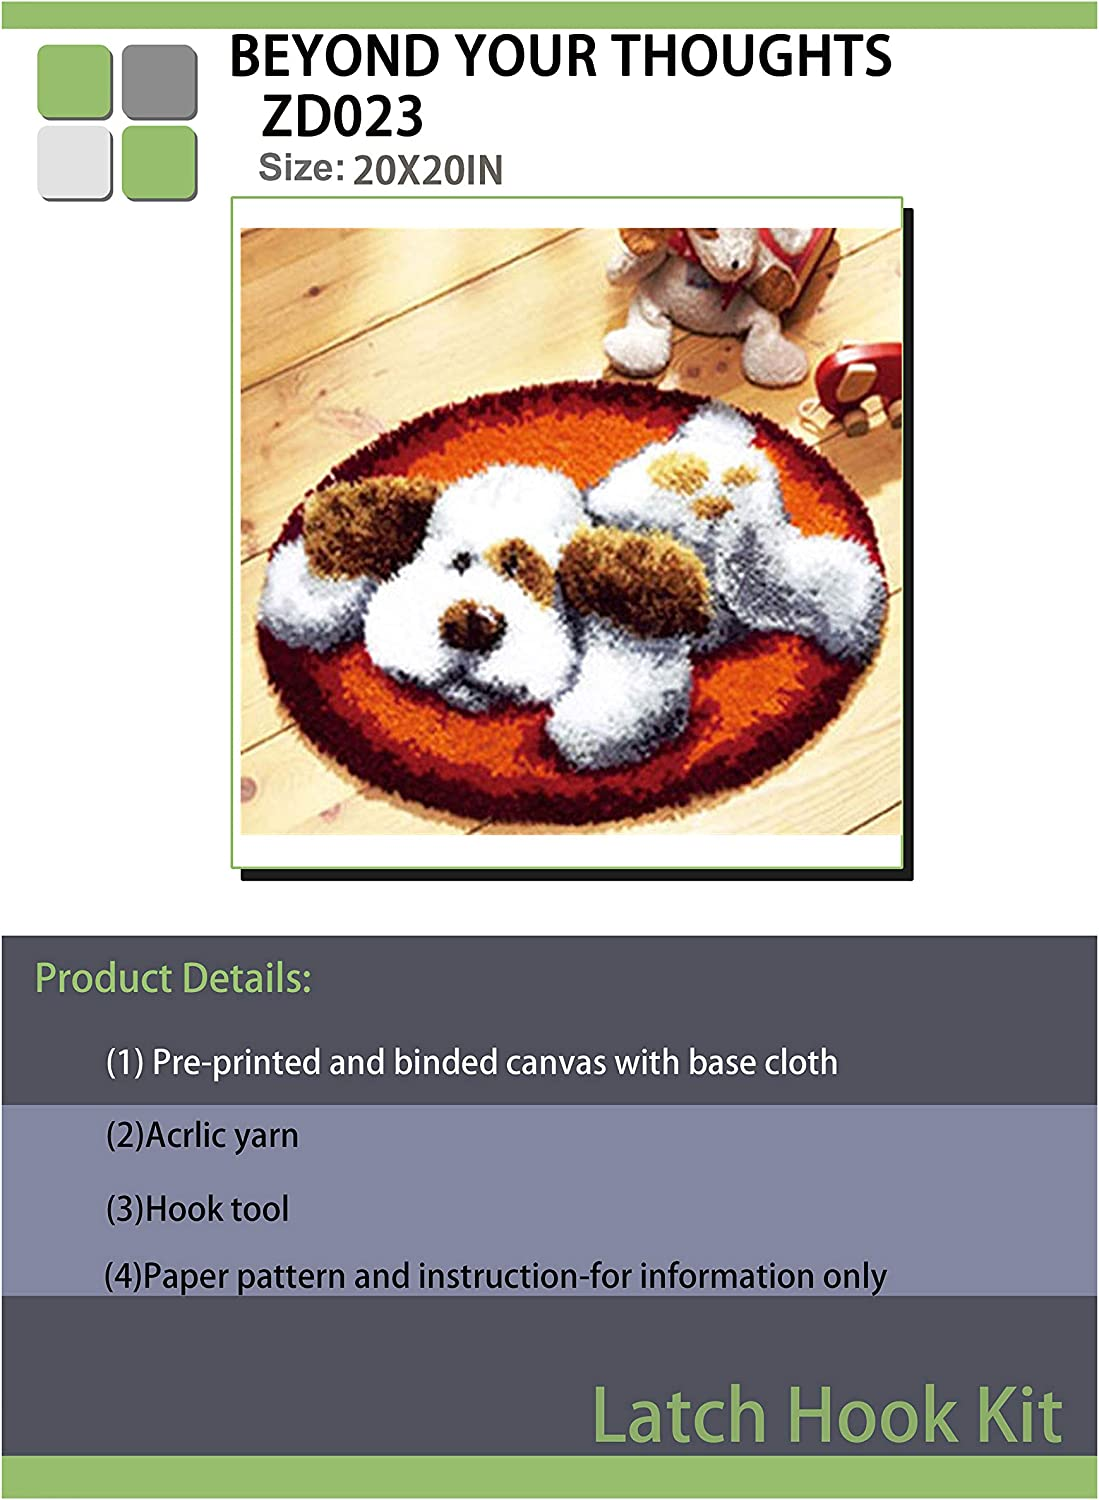 BYT Collections 15 Model Dog Latch Hook Kit Rug Dog297 20 by 15 Inch 1 pack